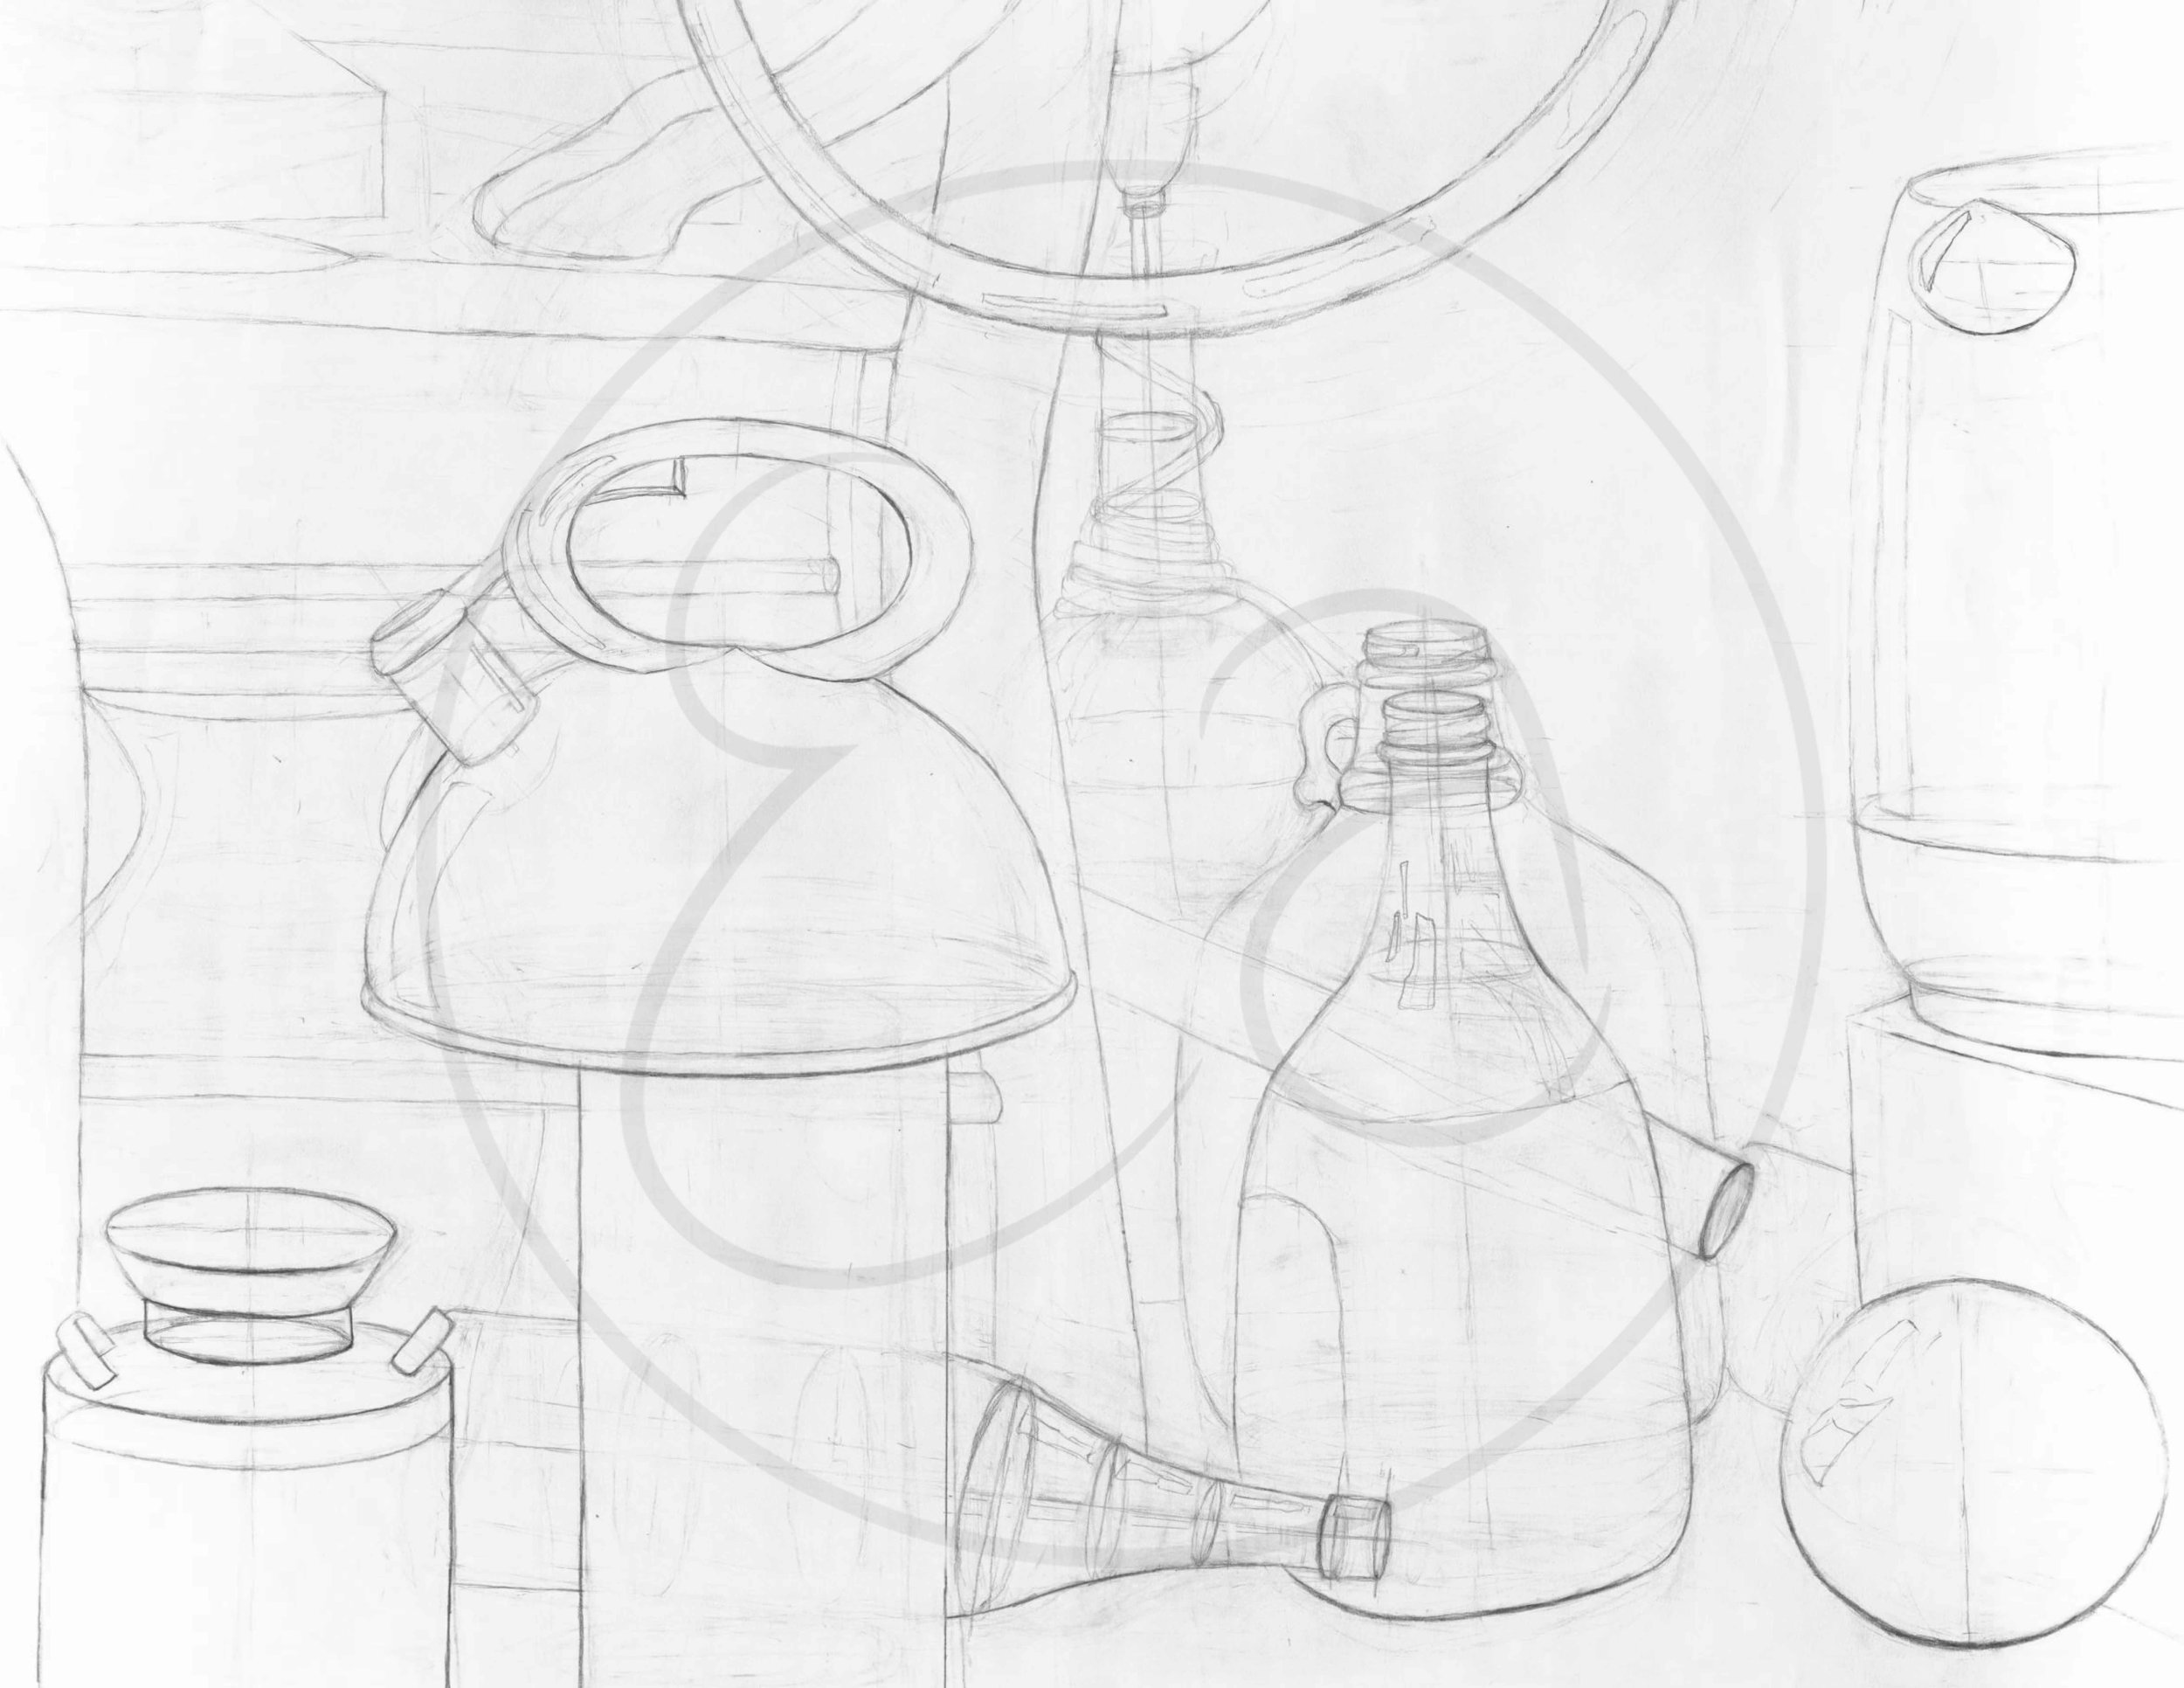 Ellipse still life with kettle, wine bottles, and other elliptical objects